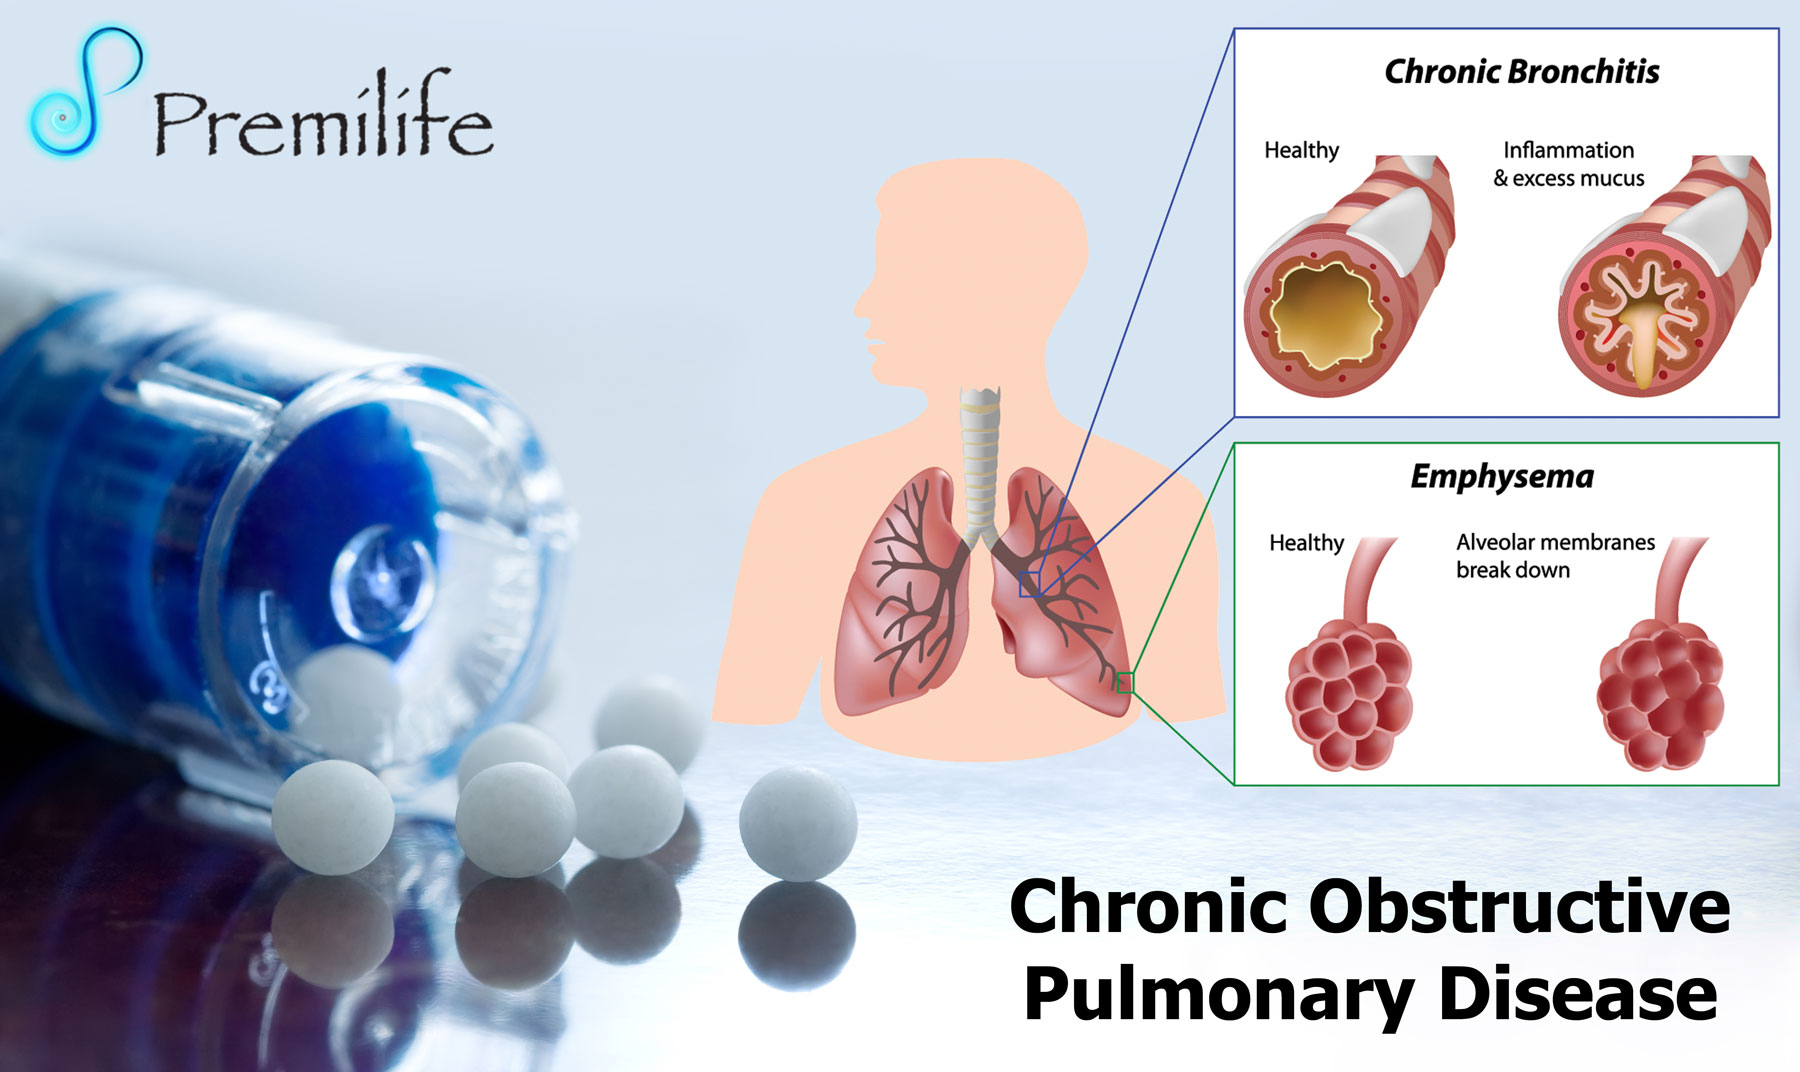 chronic obstructive pulmonary disease and support Association between social support and self-care behaviors in adults with chronic obstructive pulmonary disease zijing chen 2phd 1, vincent s fan md, mph.